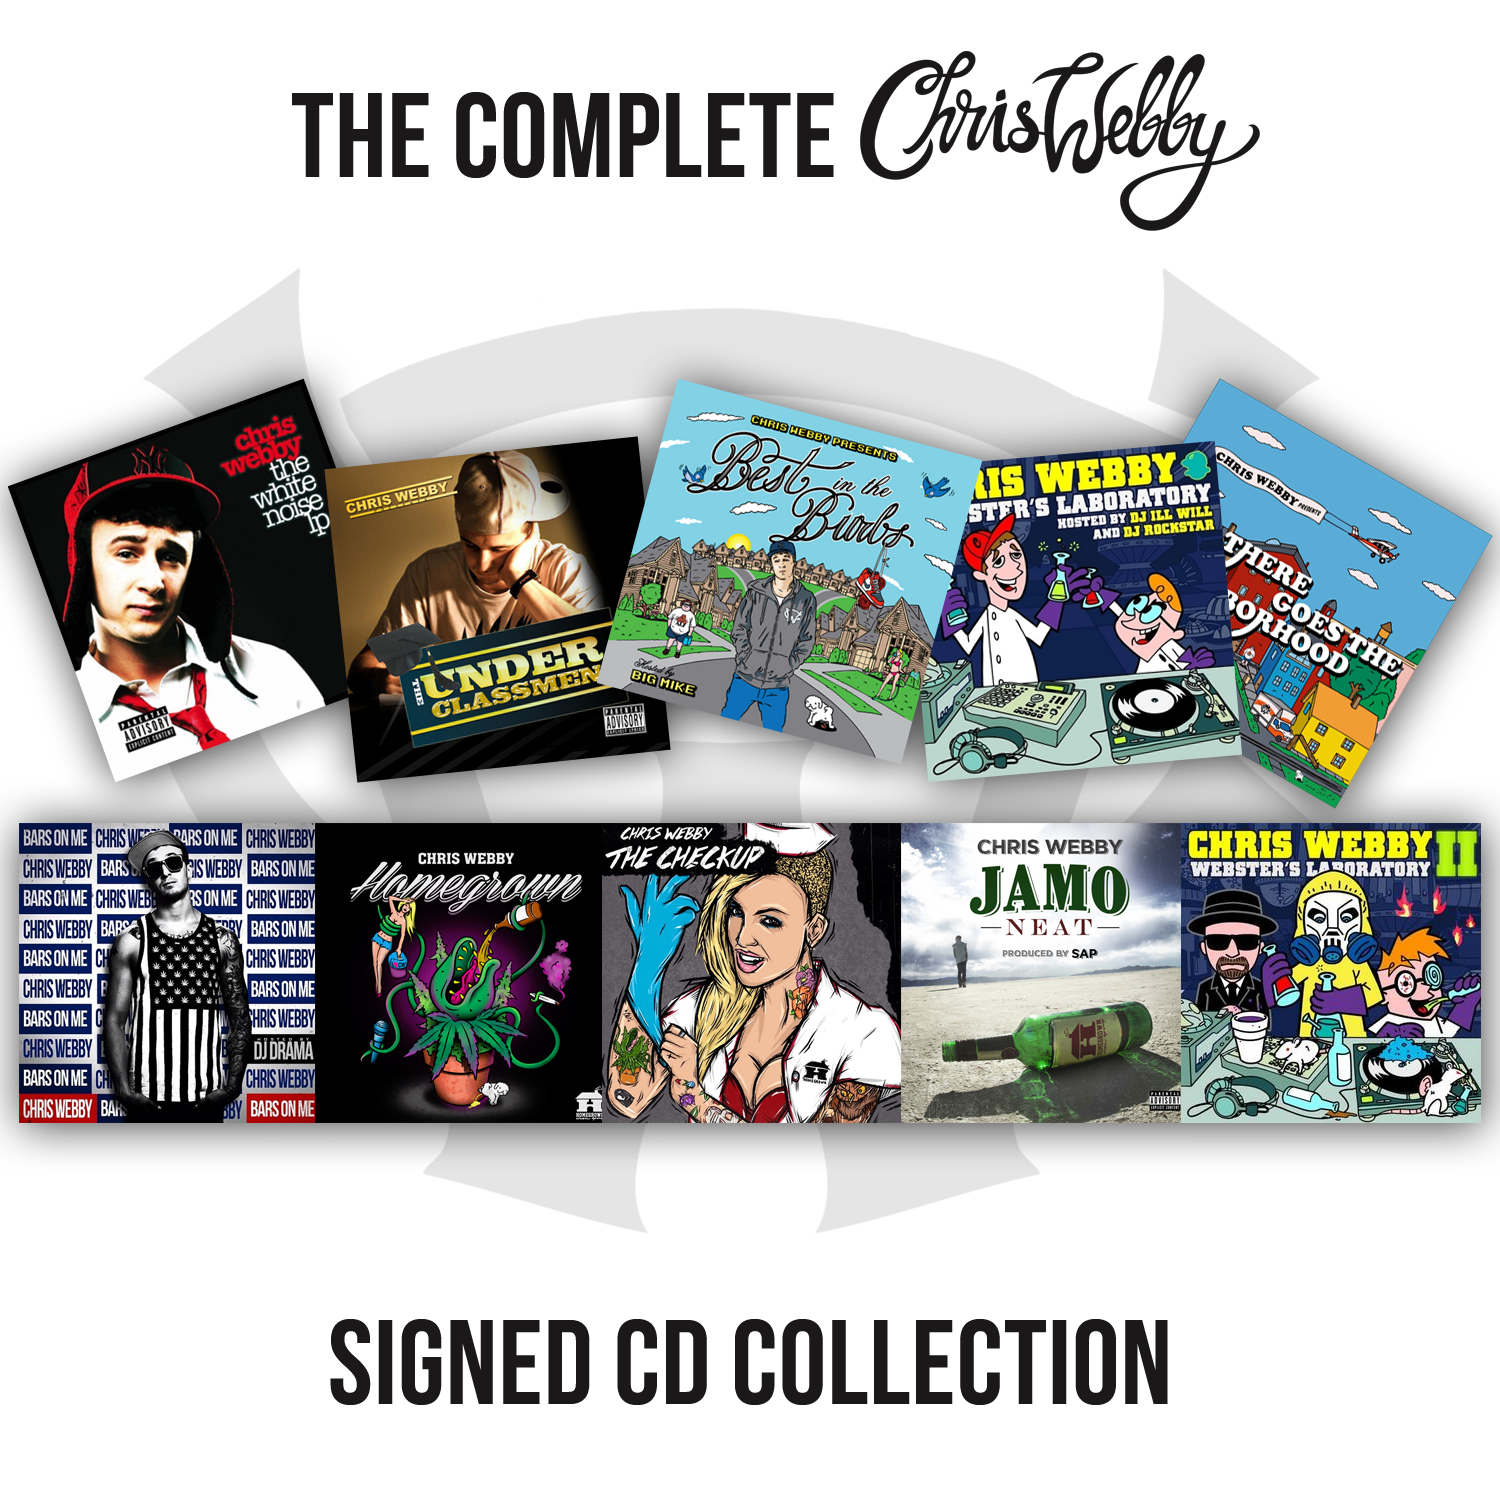 The Complete Chris Webby Signed CD Collection